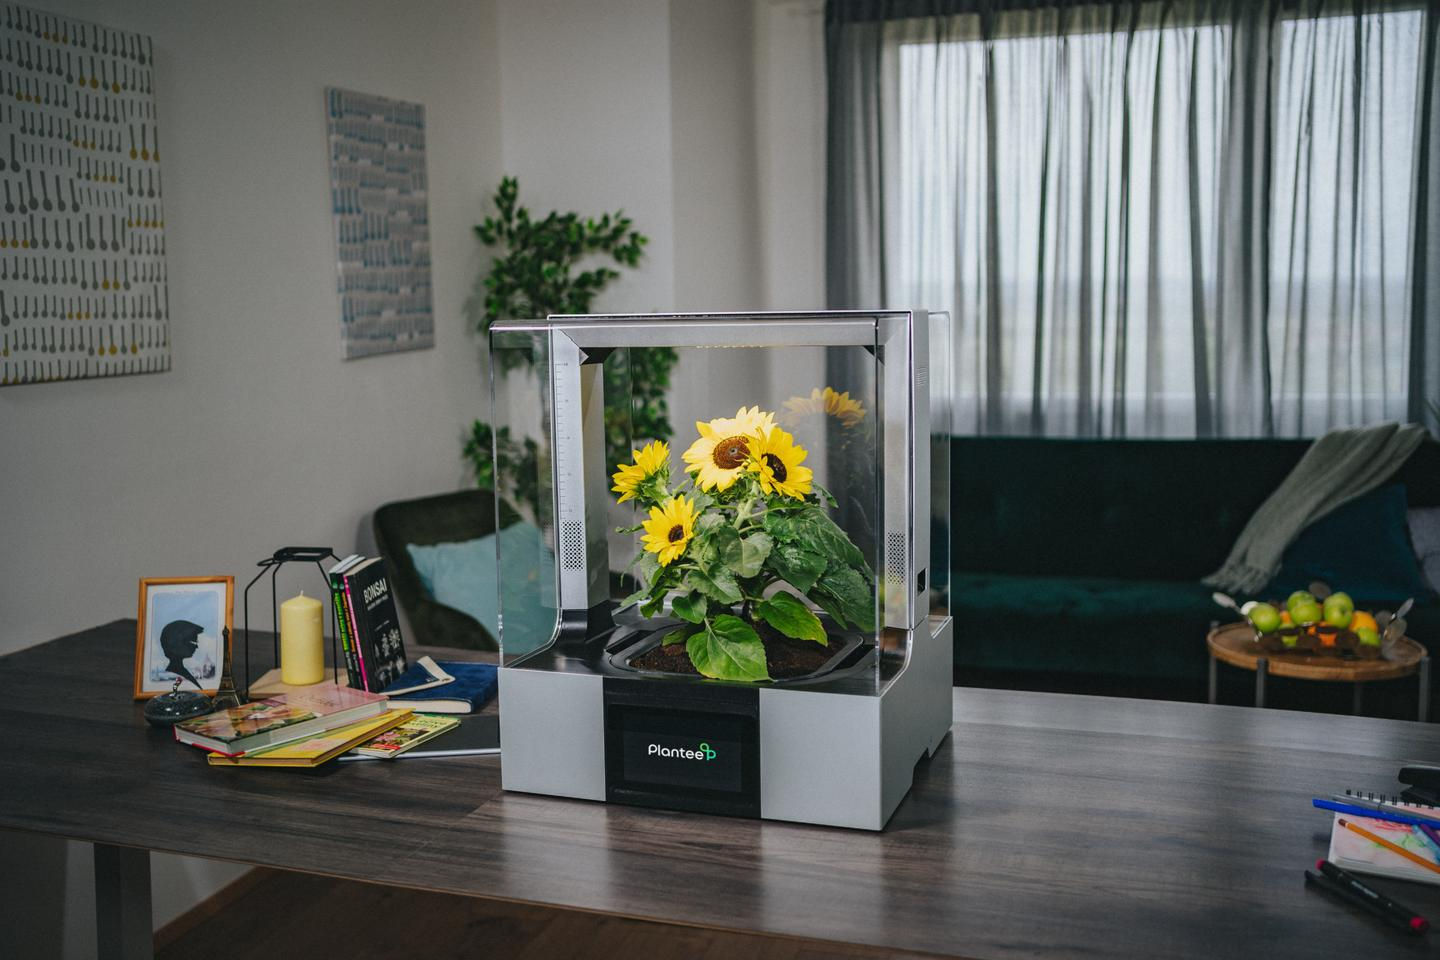 Bringing the Sun(flowers) into the living room with the Plantee indoor greenhouse